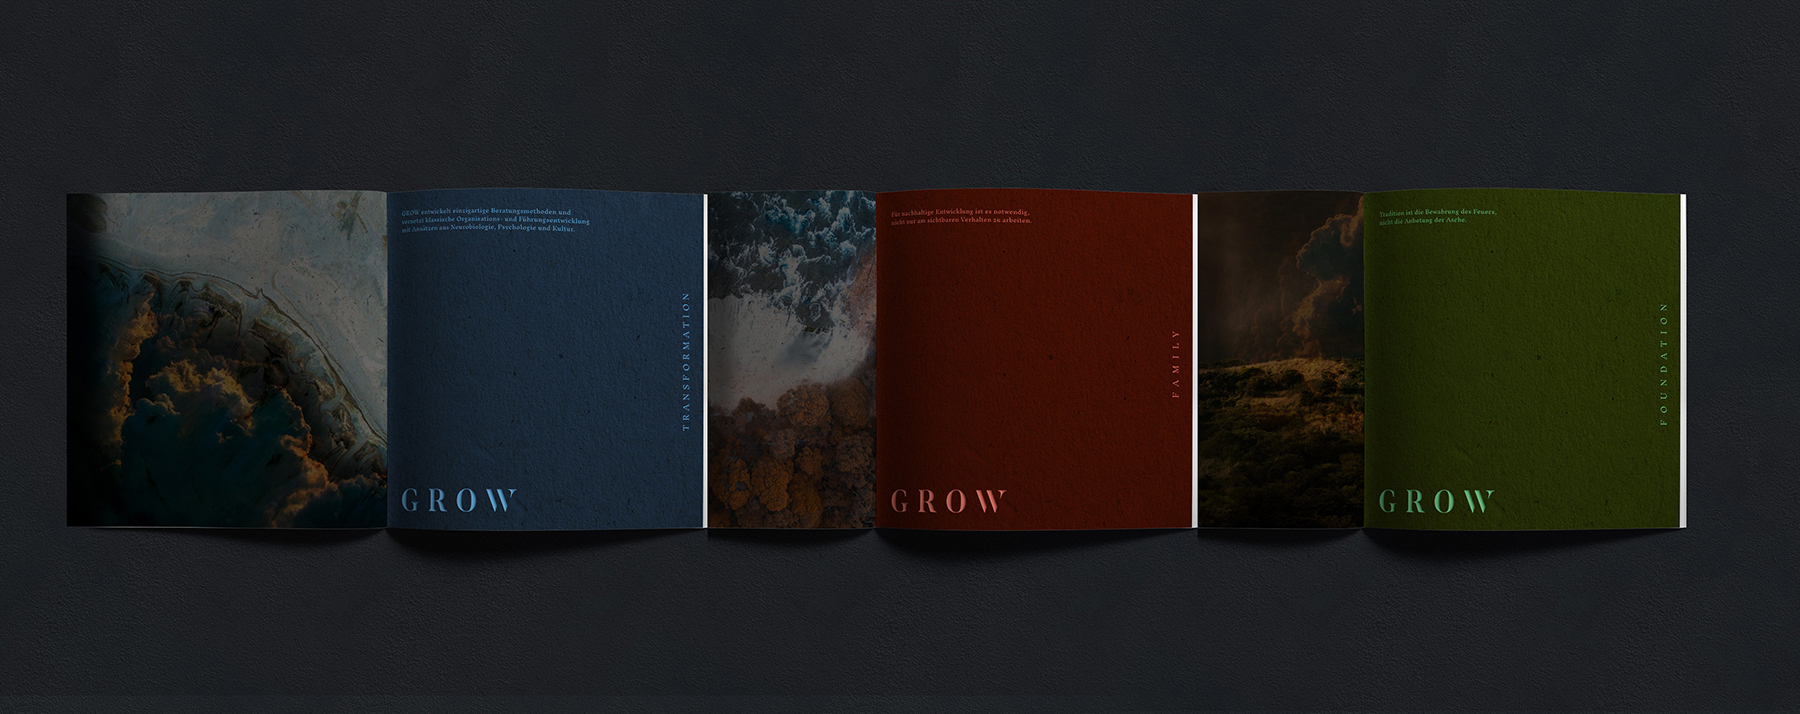 grow-corporate-design-by-max-duchardt-m-a-a-x-branding-broschure-all